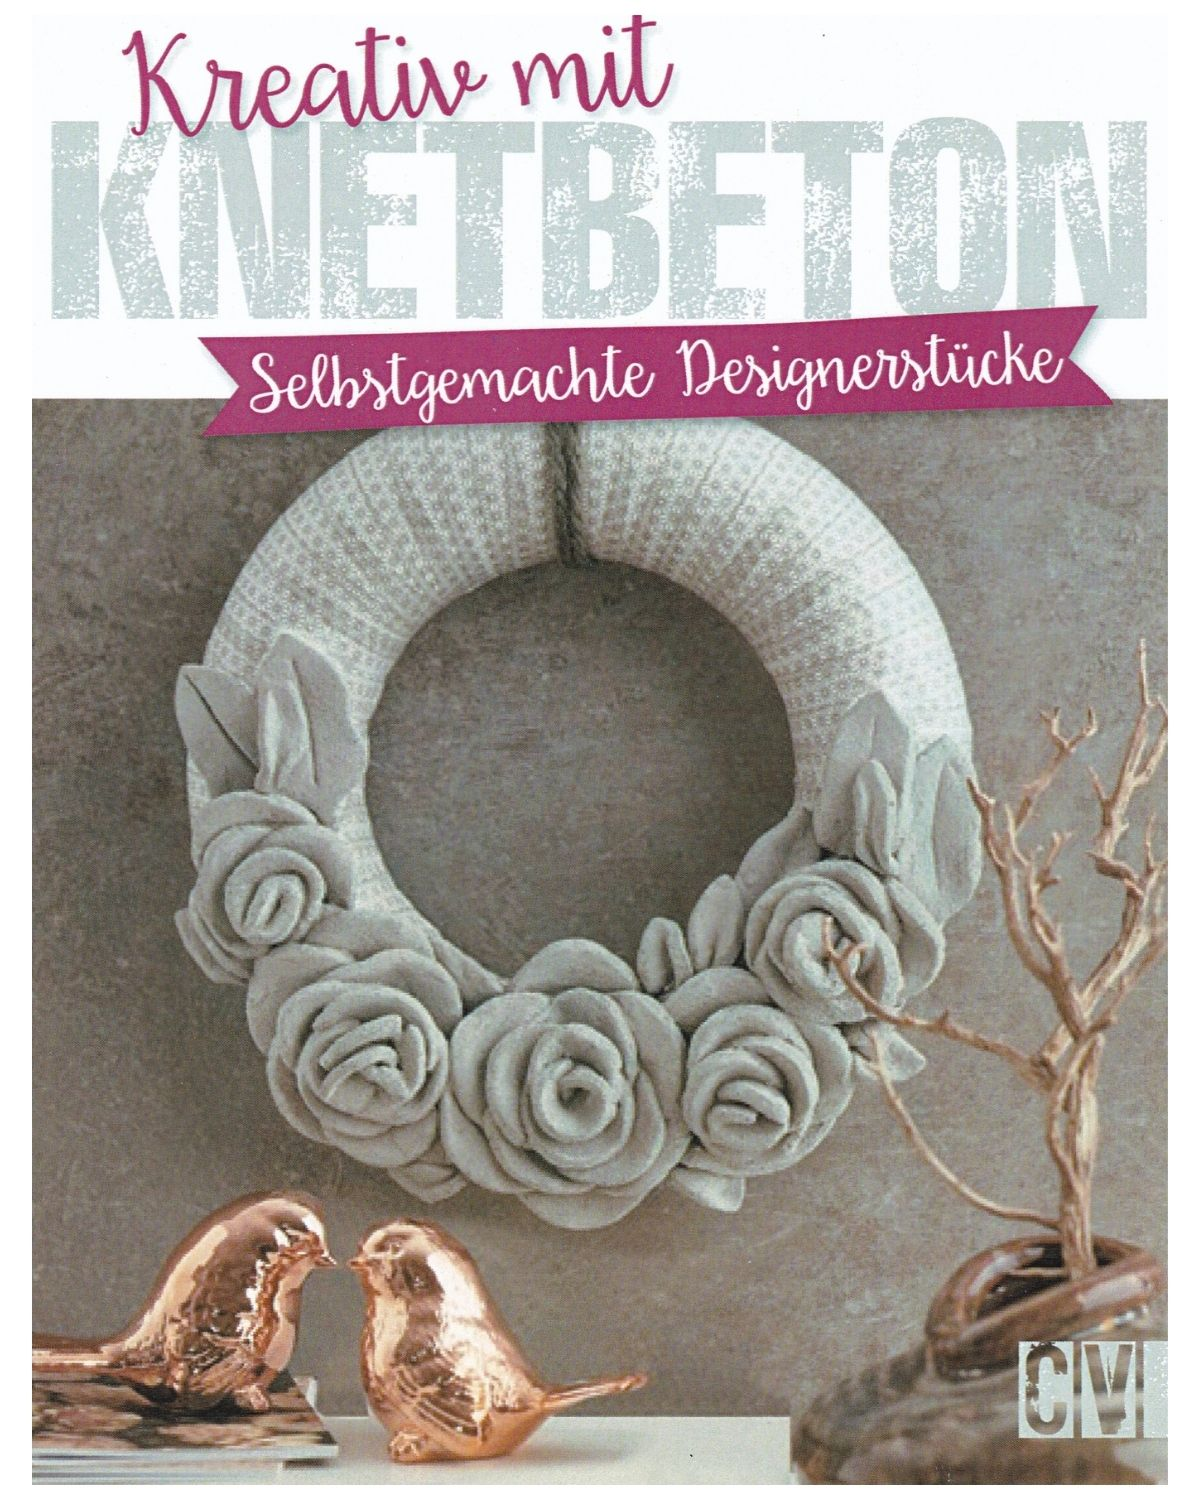 KREATIVE FIRMENEVENTS: BLEIB IM KOPF MIT DIY WORKSHOPS